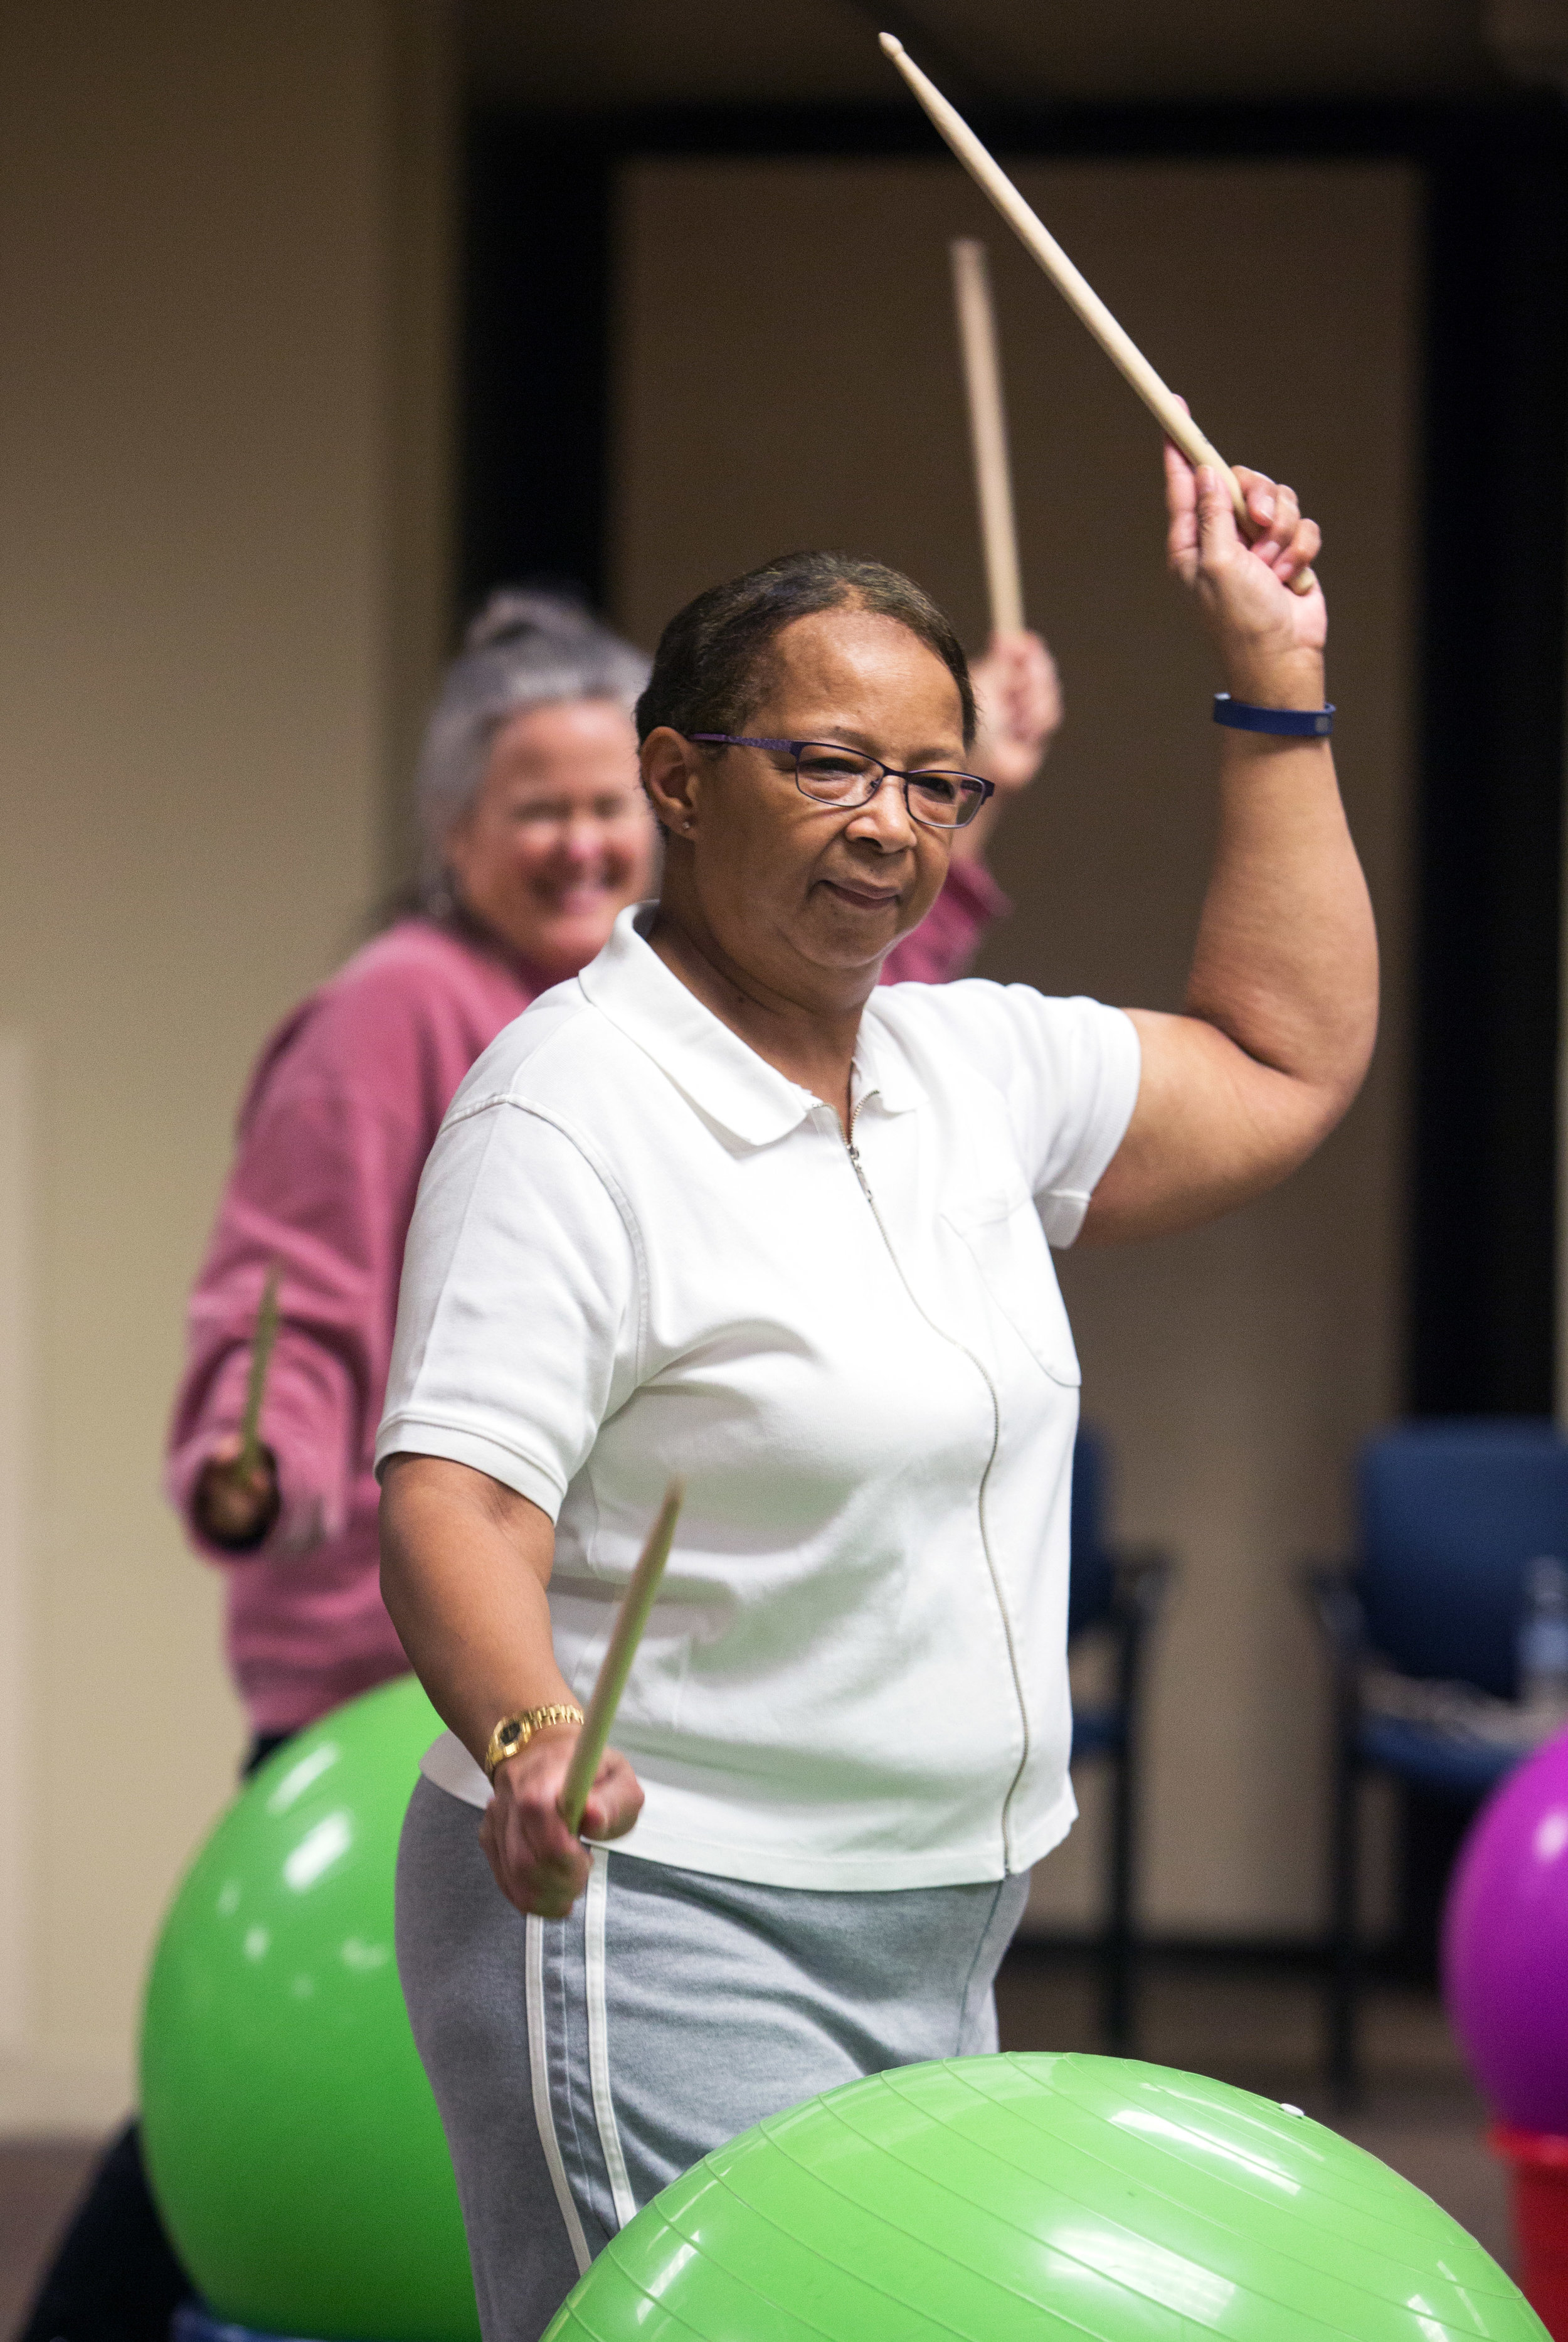 Sheila Googins of Toledo, front, and Marnie Arndt, back, follow along with a choreographed routine during the weekly cardio drumming for cancer survivors work out in the Heath and Human Services Building at University of Toledo on Thursday, Oct. 20, 2016.